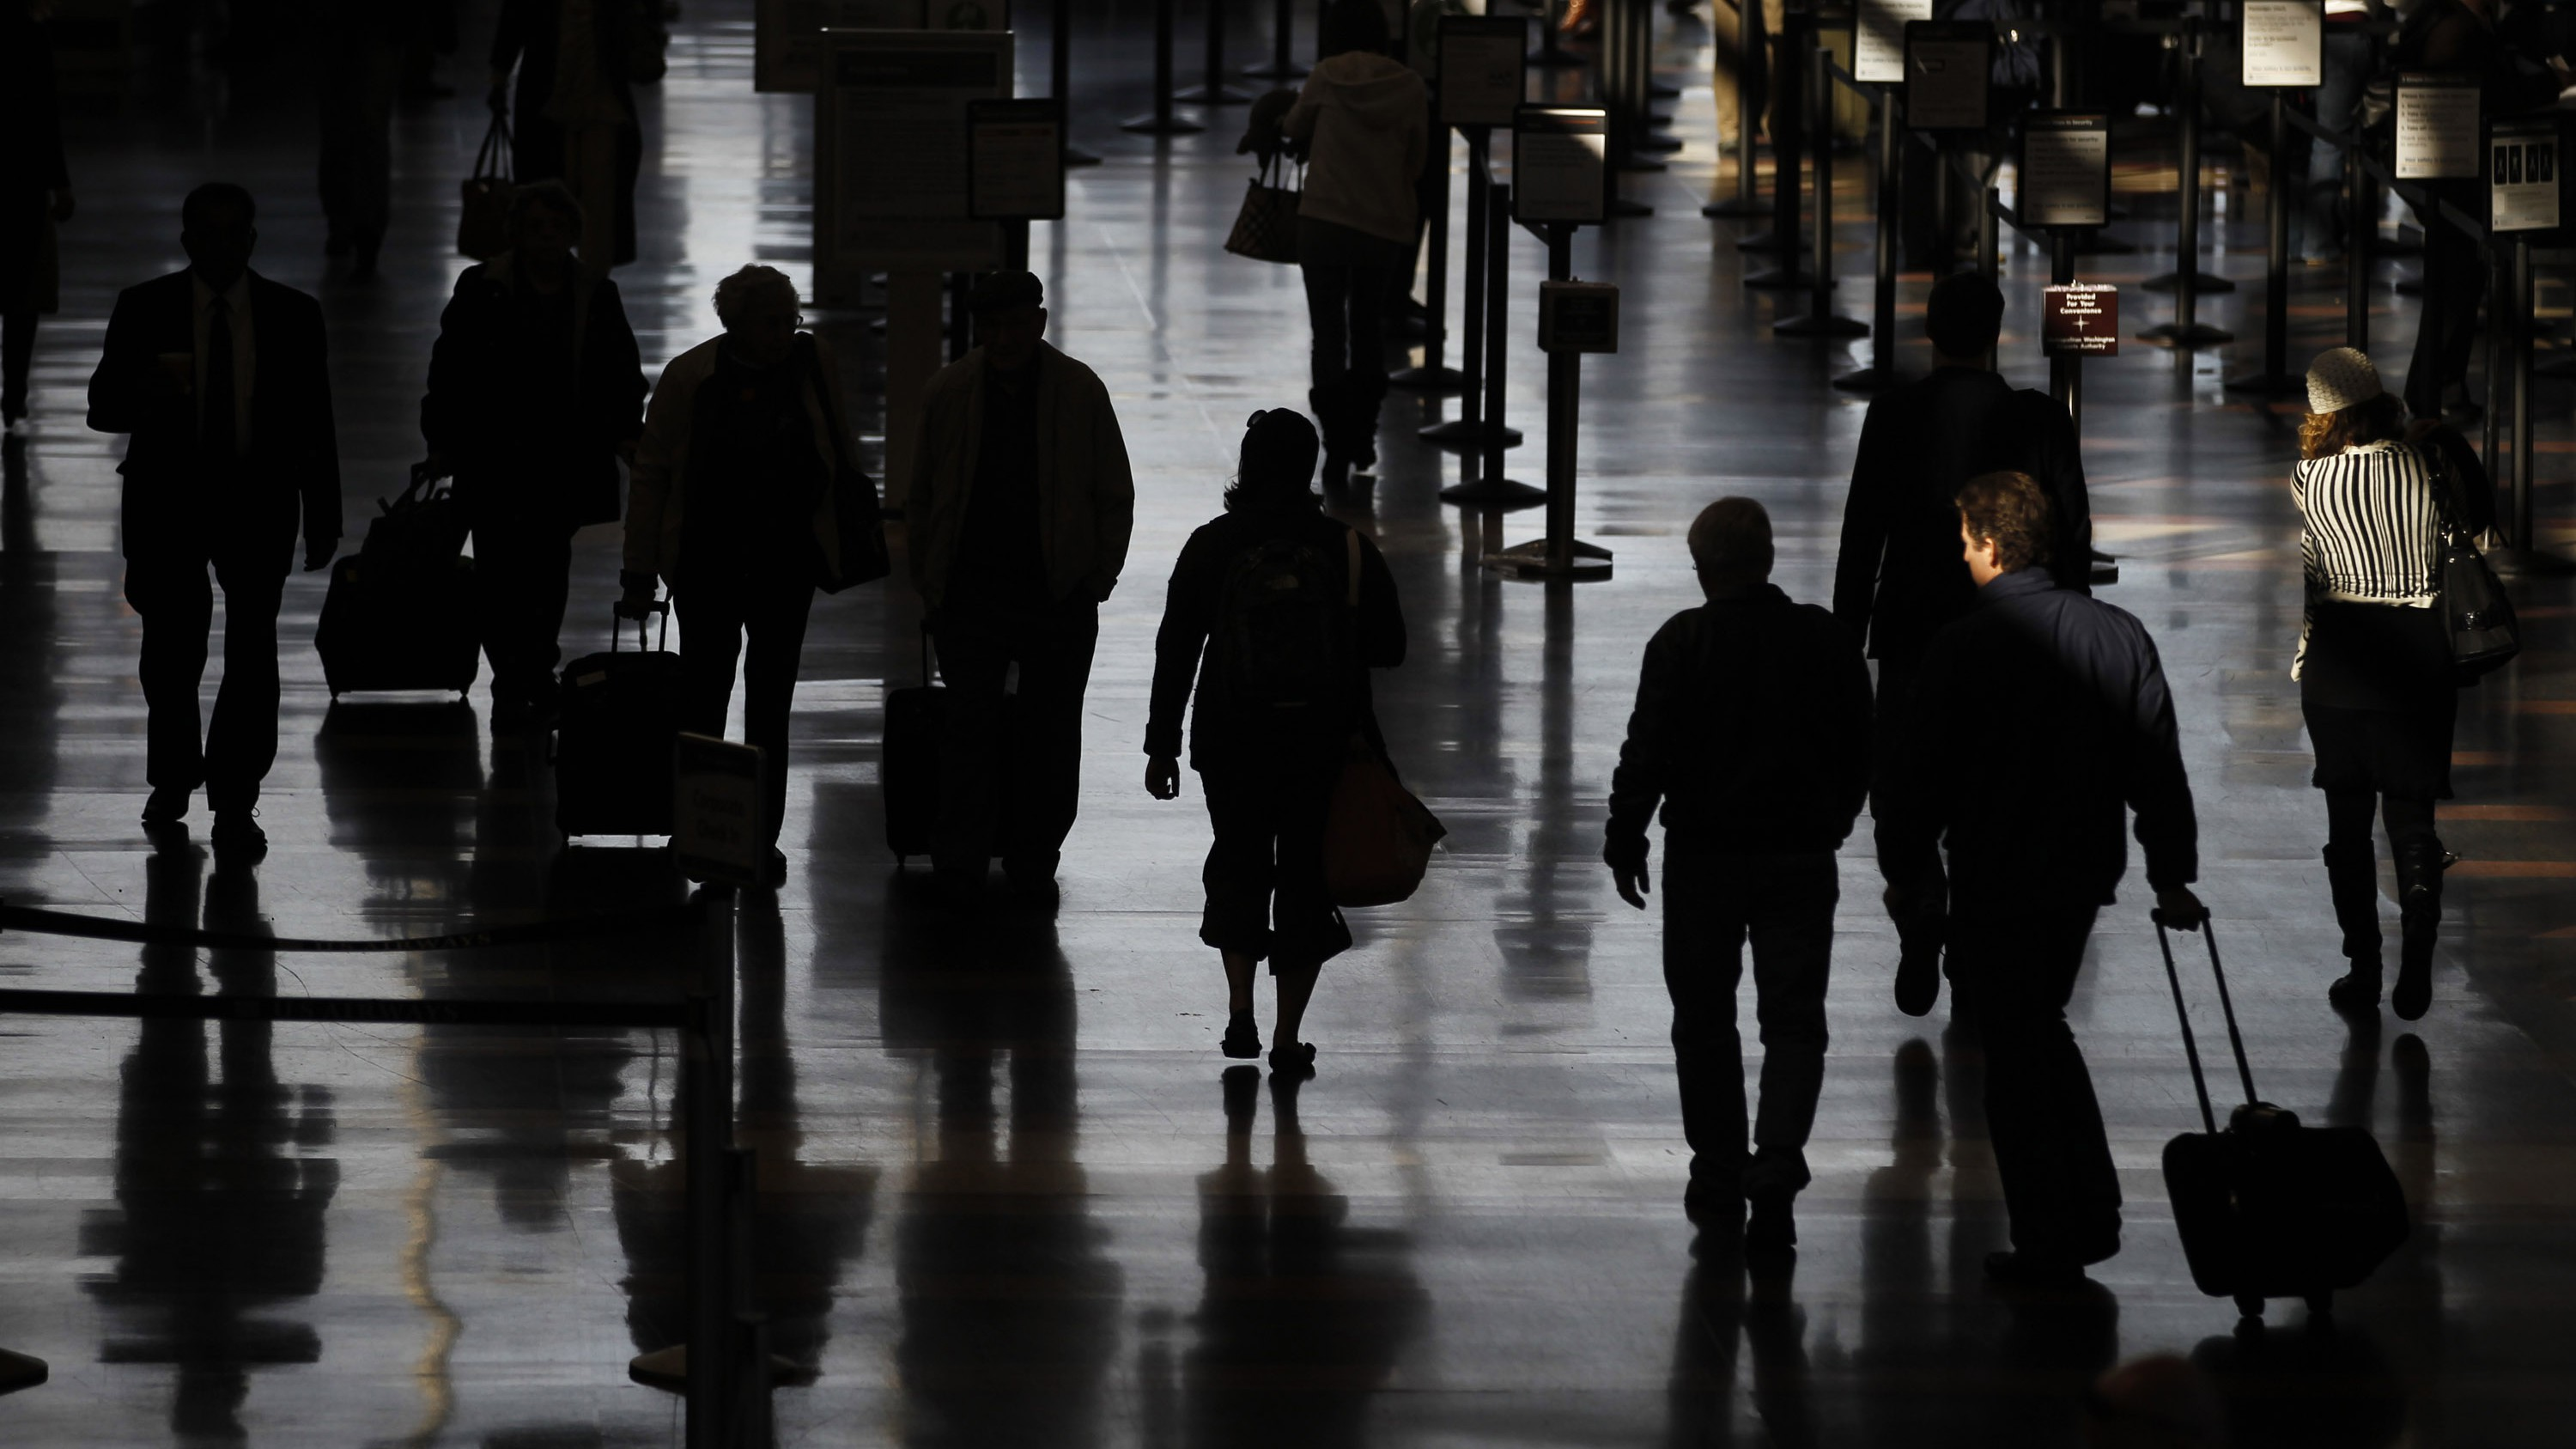 Travellers walk to their flights at the Ronald Reagan Washington National Airport in Washington November 24, 2010. Millions of Americans took to the skies on Wednesday for the start of the Thanksgiving holiday amid protests by some travellers about heightened, more invasive security procedures.